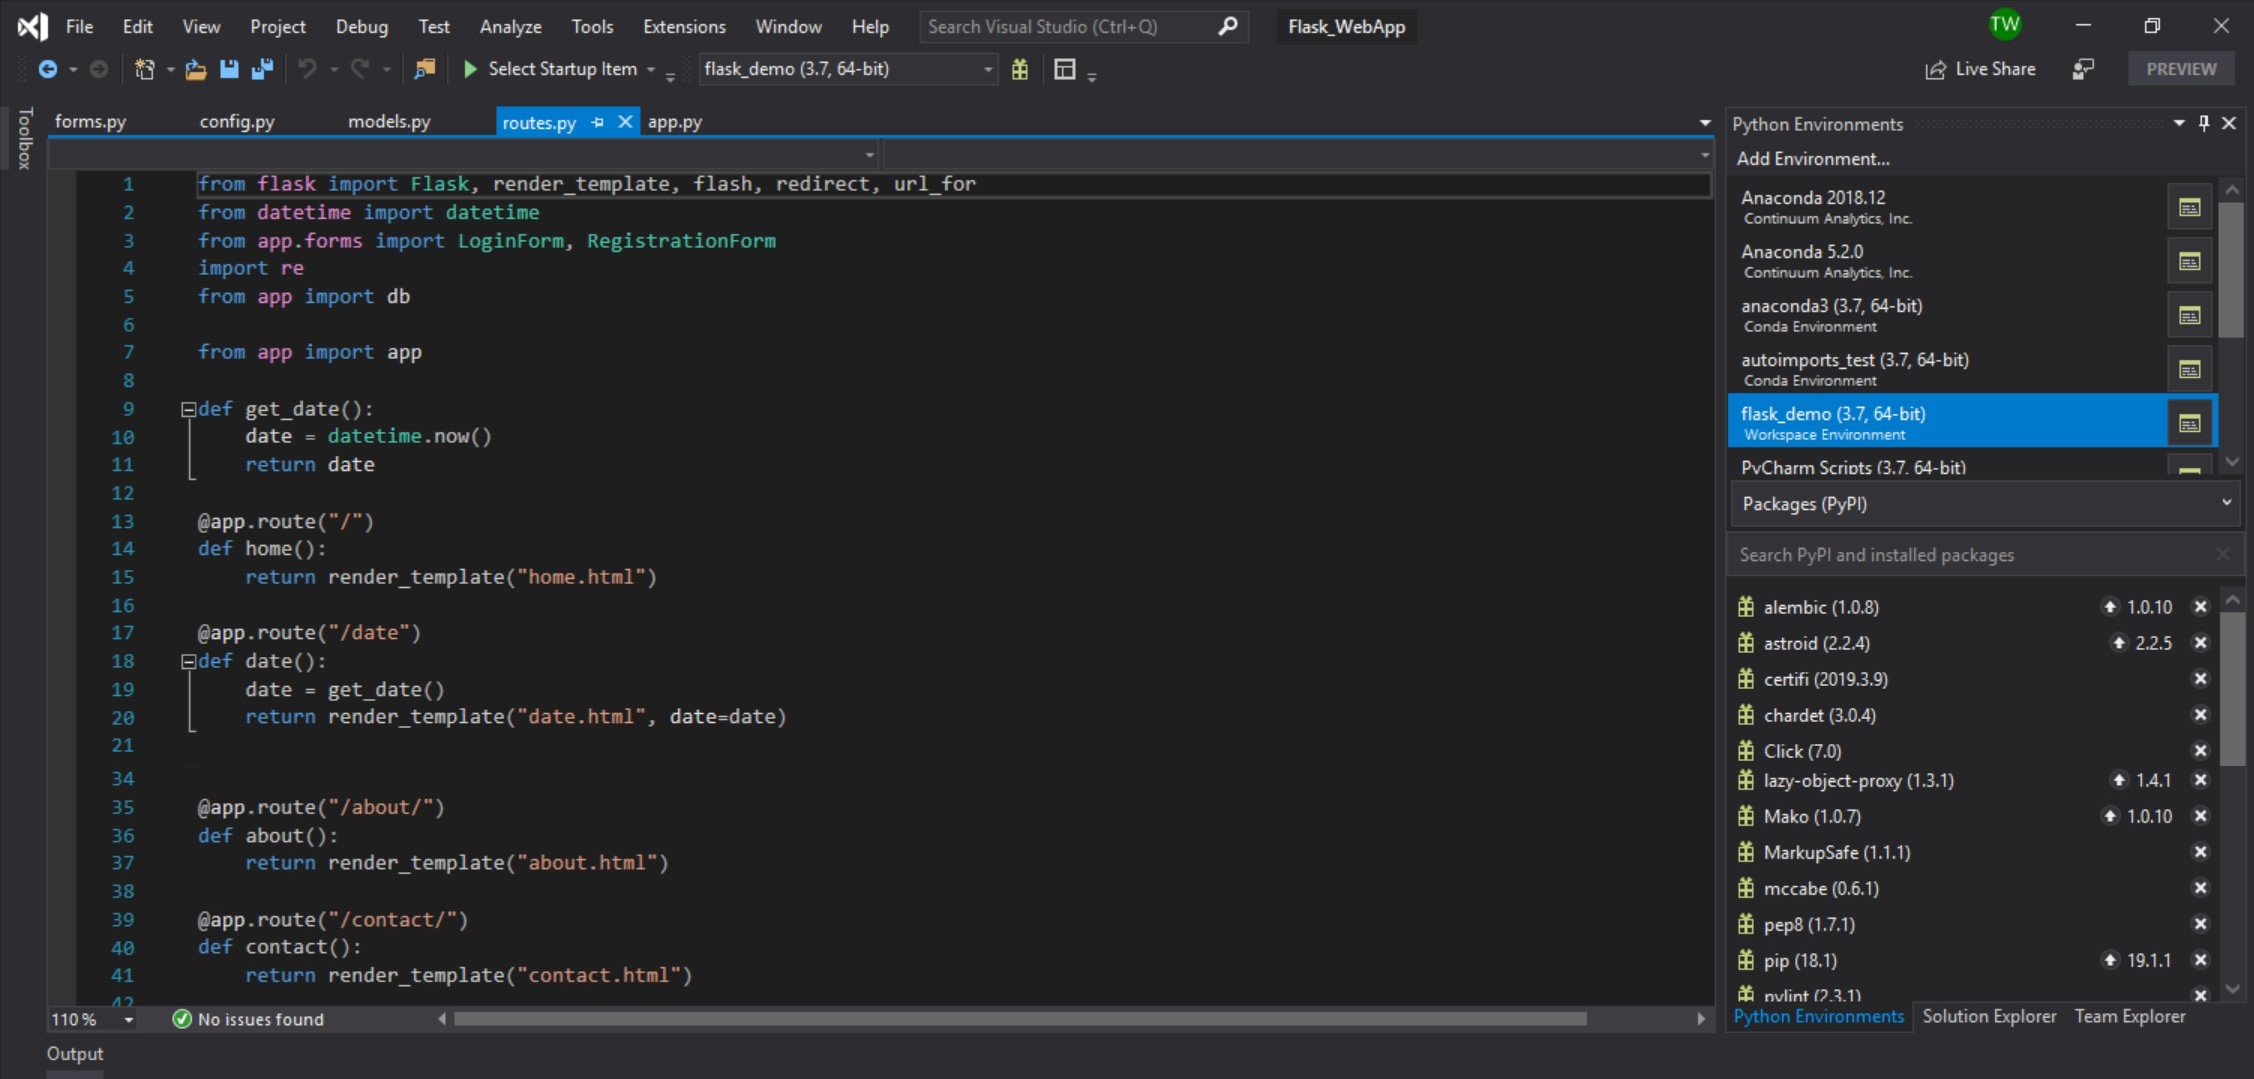 screenshot of python development